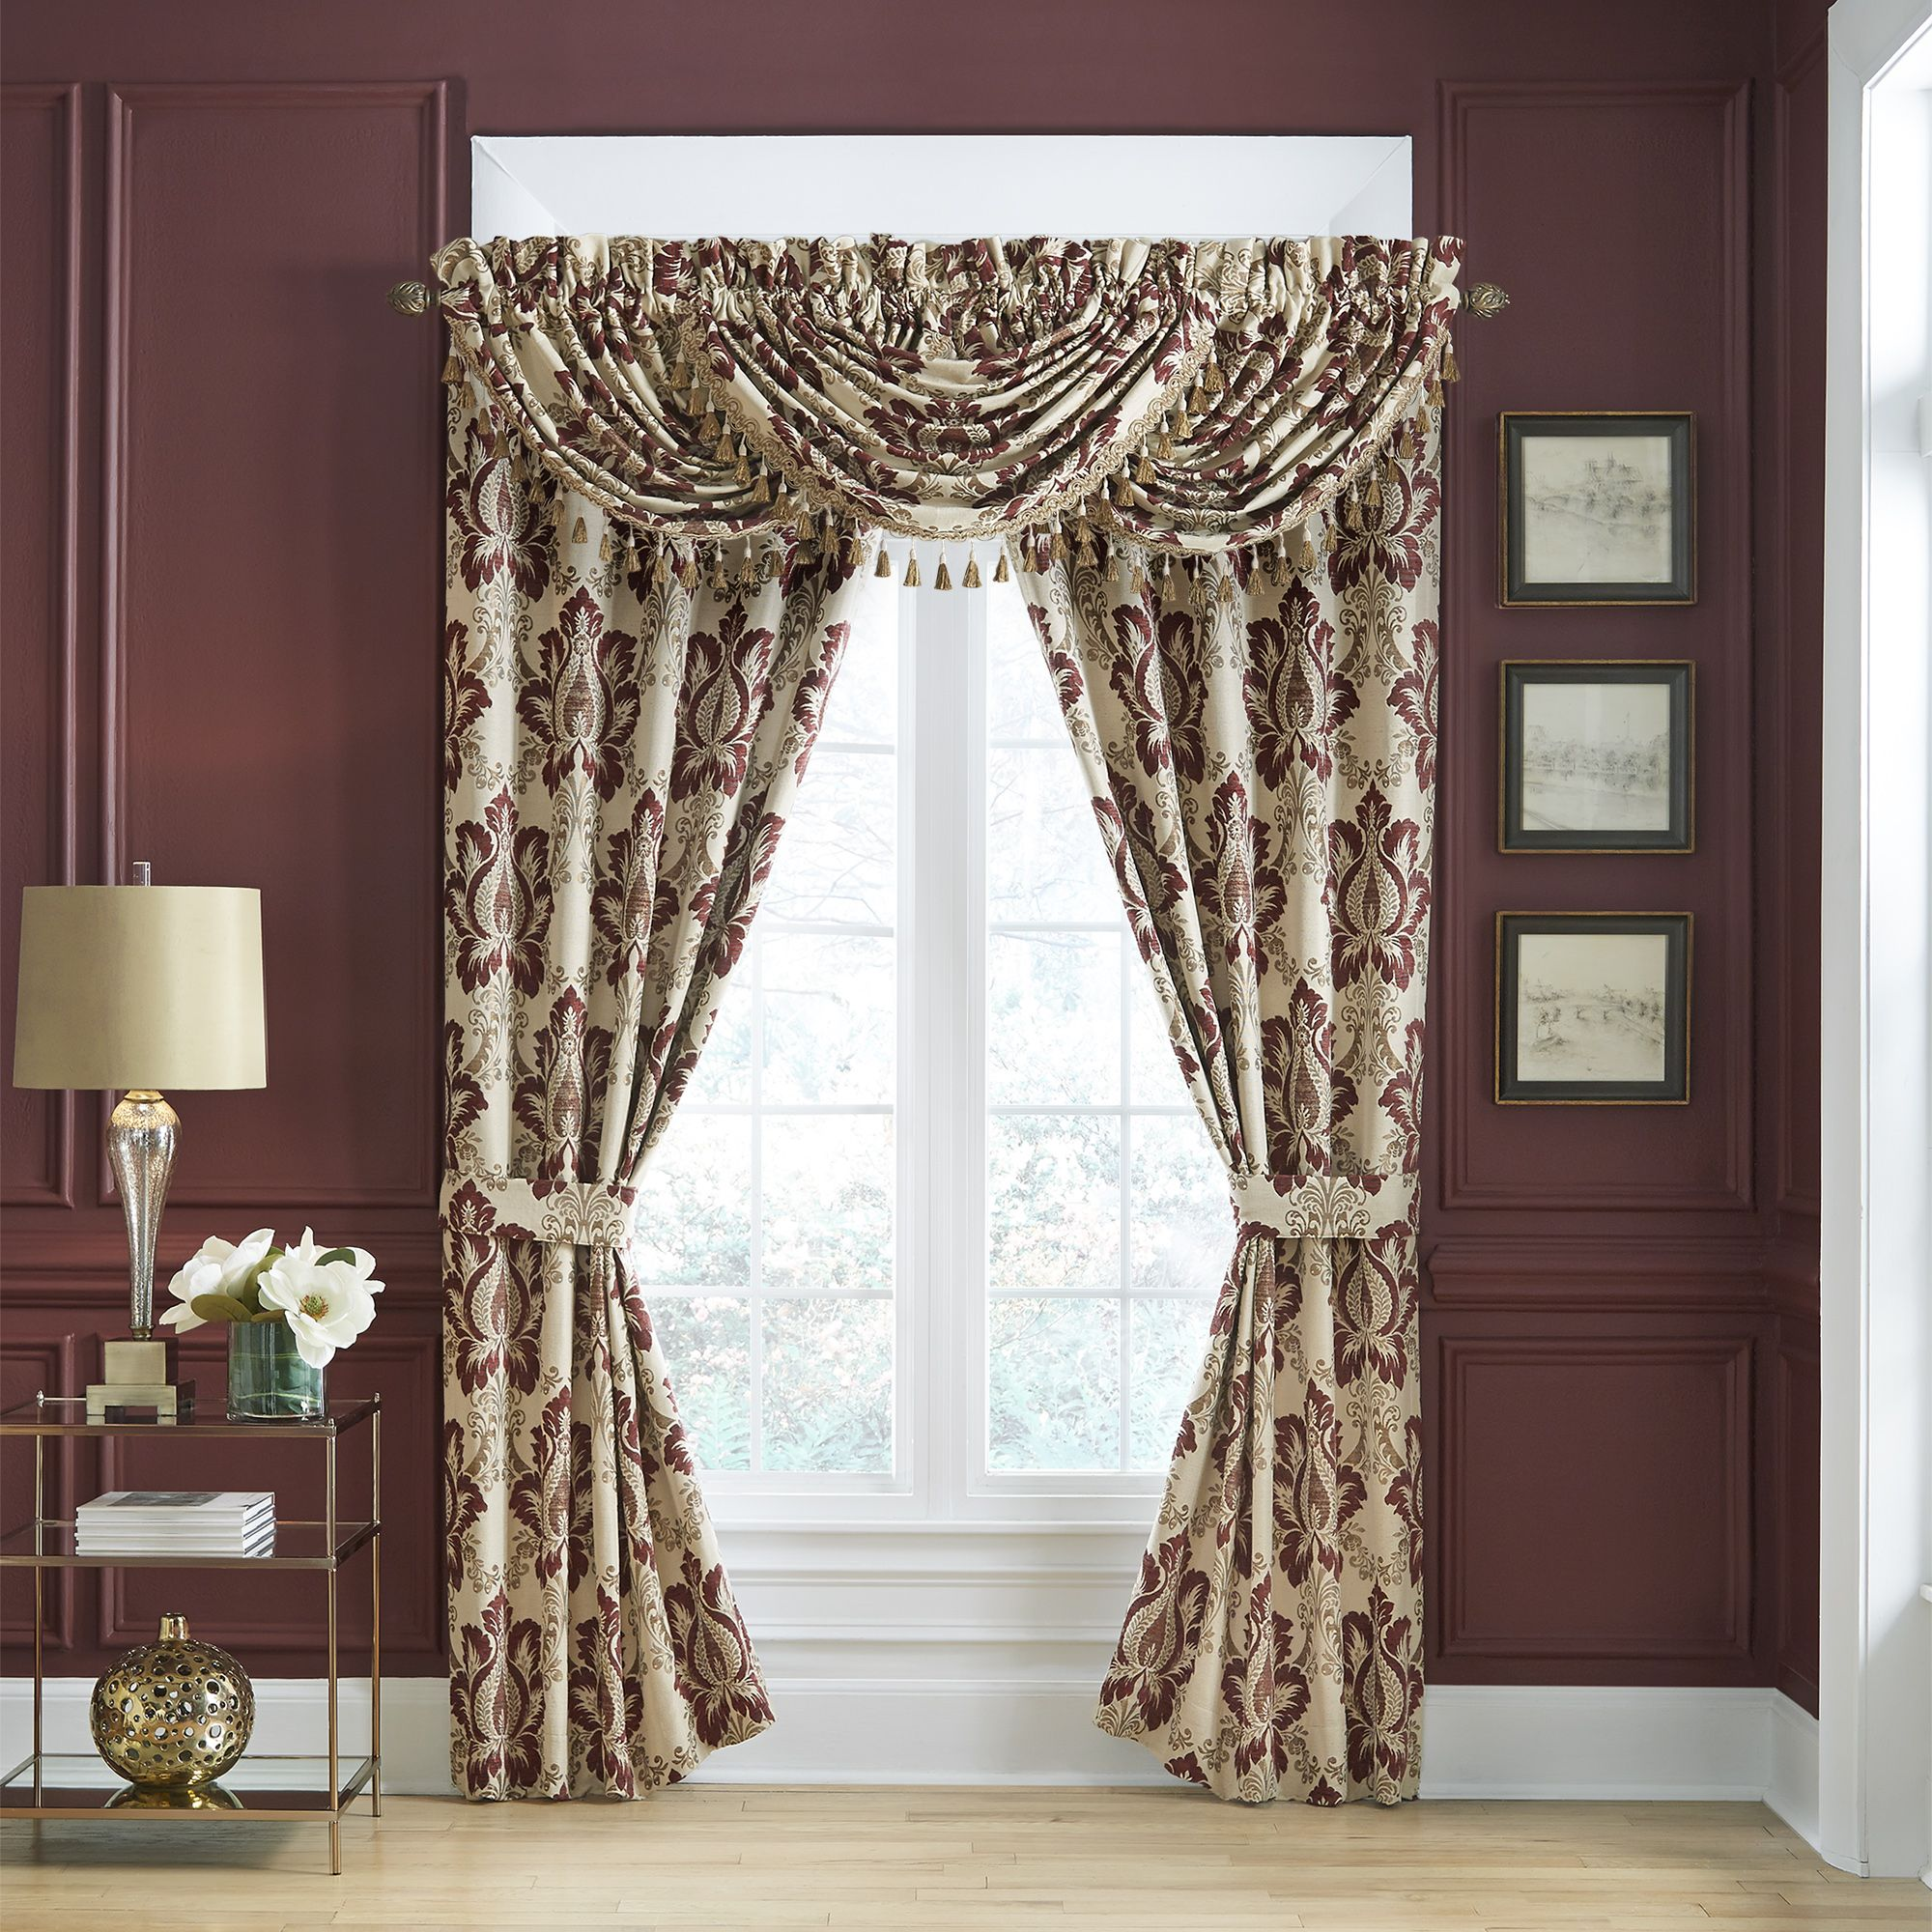 Esmeralda Bedding Collection In 2020 Drapery Panels Panel Curtains Curtains